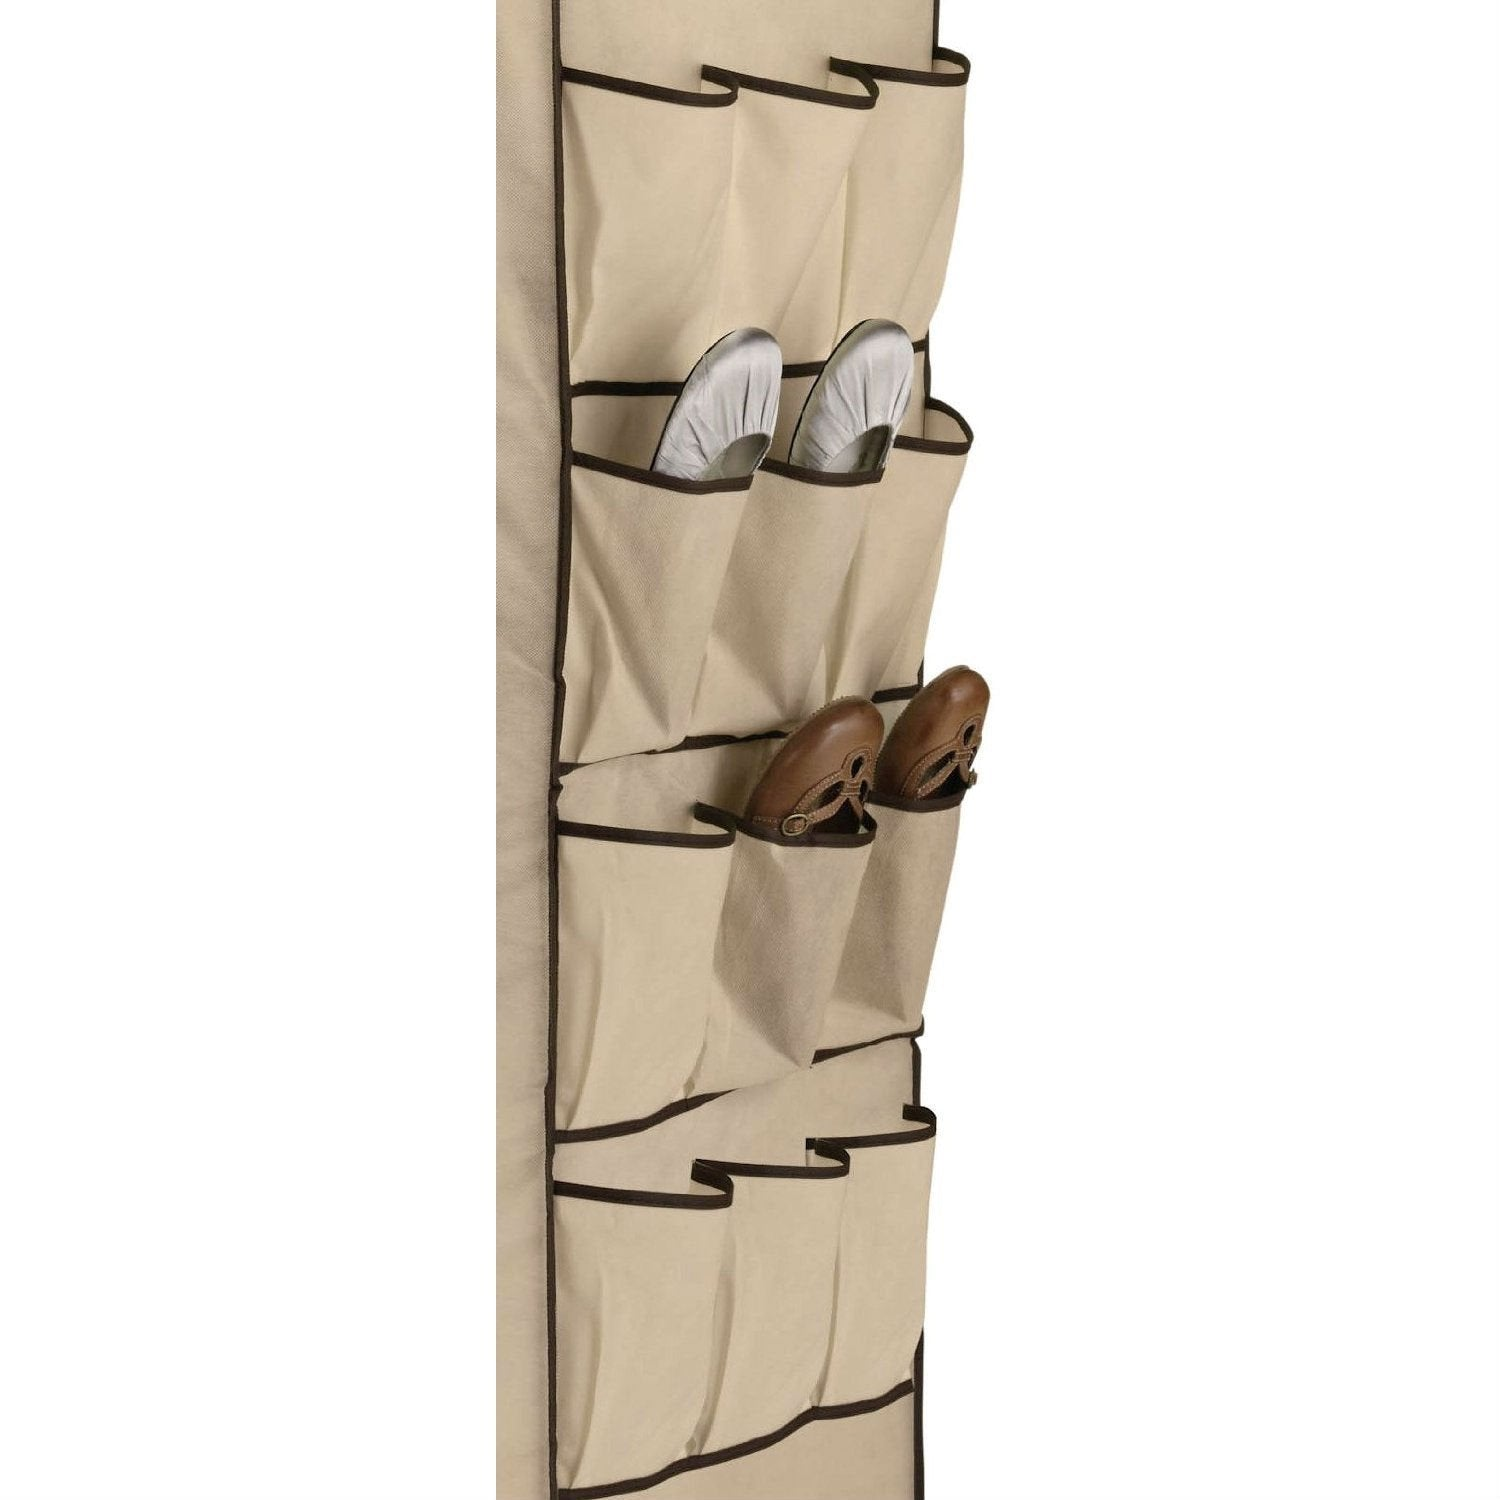 Tan 27-inch Portable Storage Closet Wardrobe with Shoe Organizer.